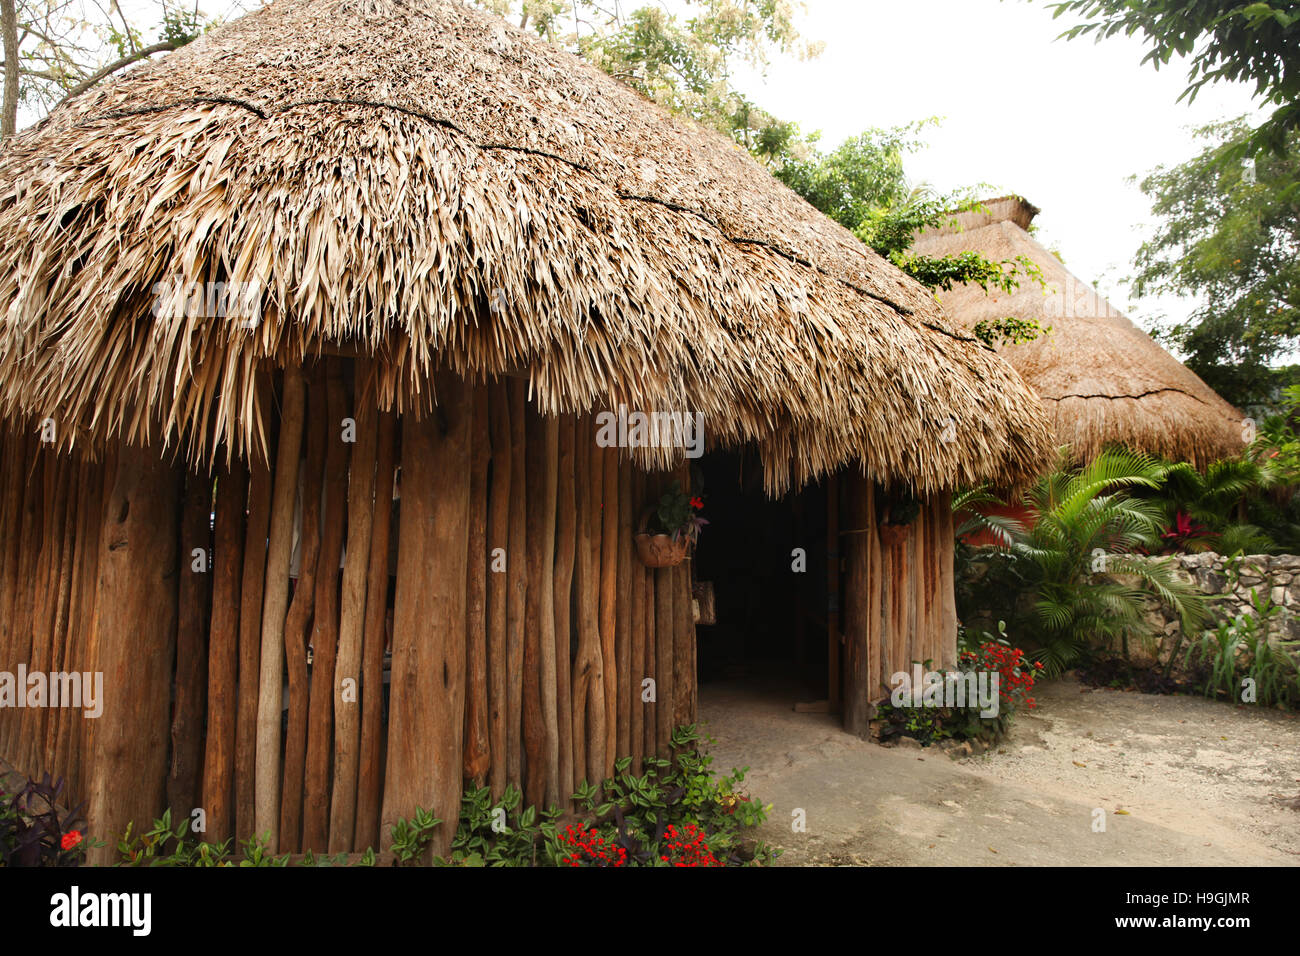 Indian wood hut photos indian wood hut images alamy for Cabine di hugo salt creek